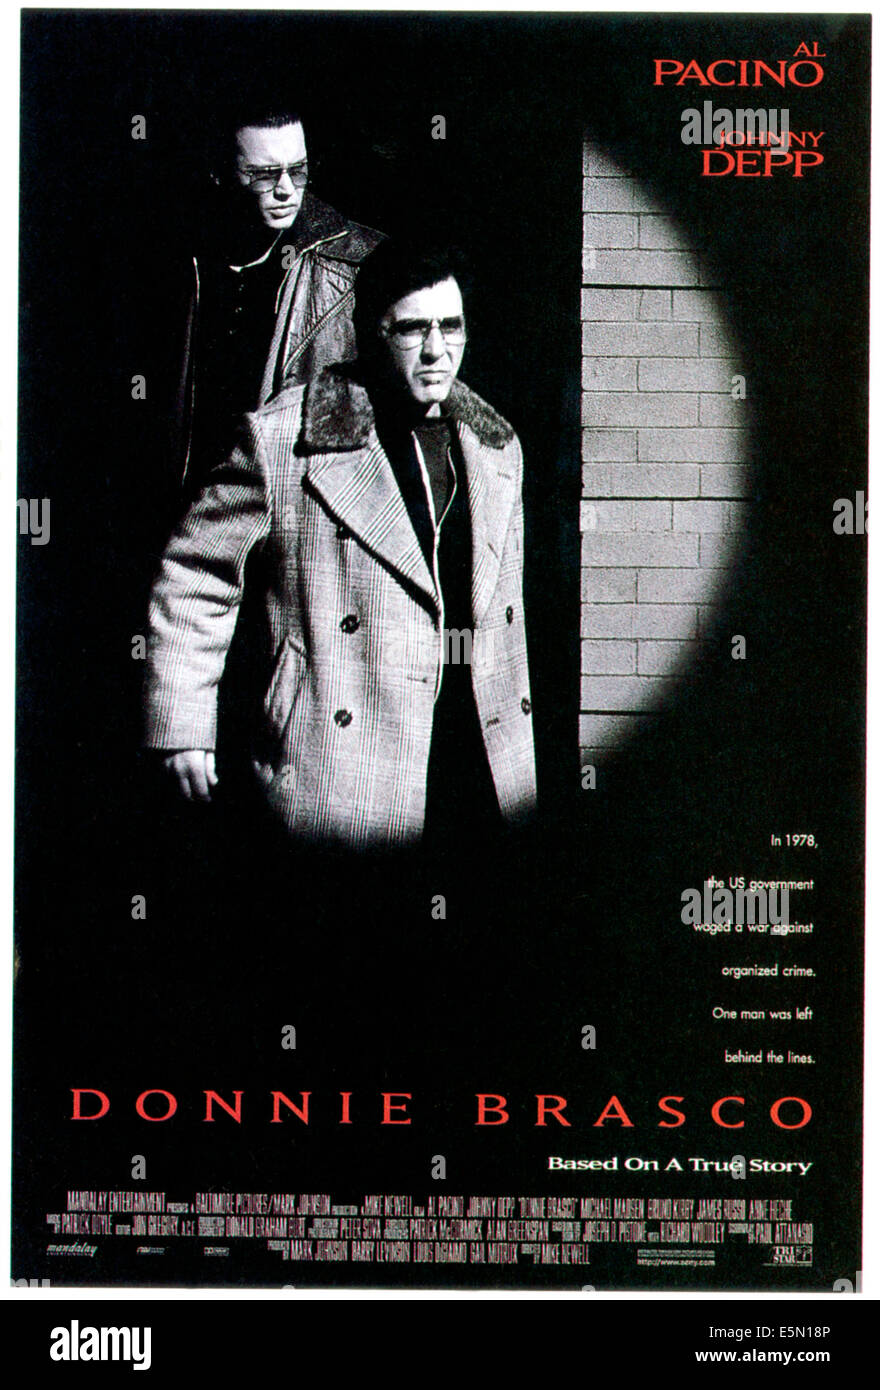 DONNIE BRASCO, Johnny Depp, Al Pacino, 1997, ©TriStar Pictures/courtesy Everett Collection Stock Photo